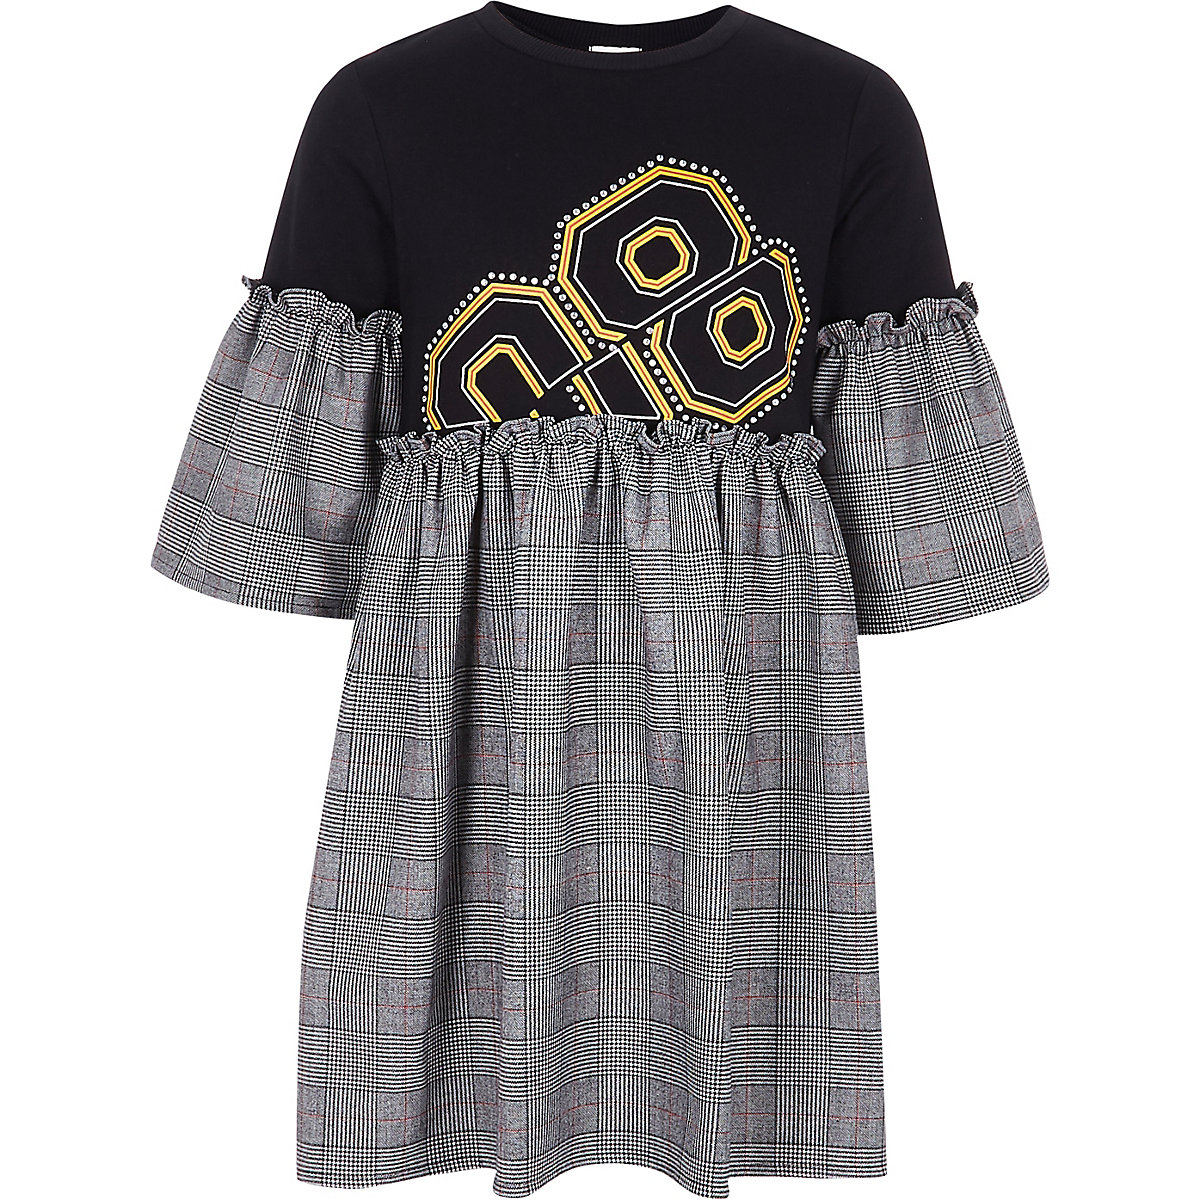 Girls black check embellished T-shirt dress